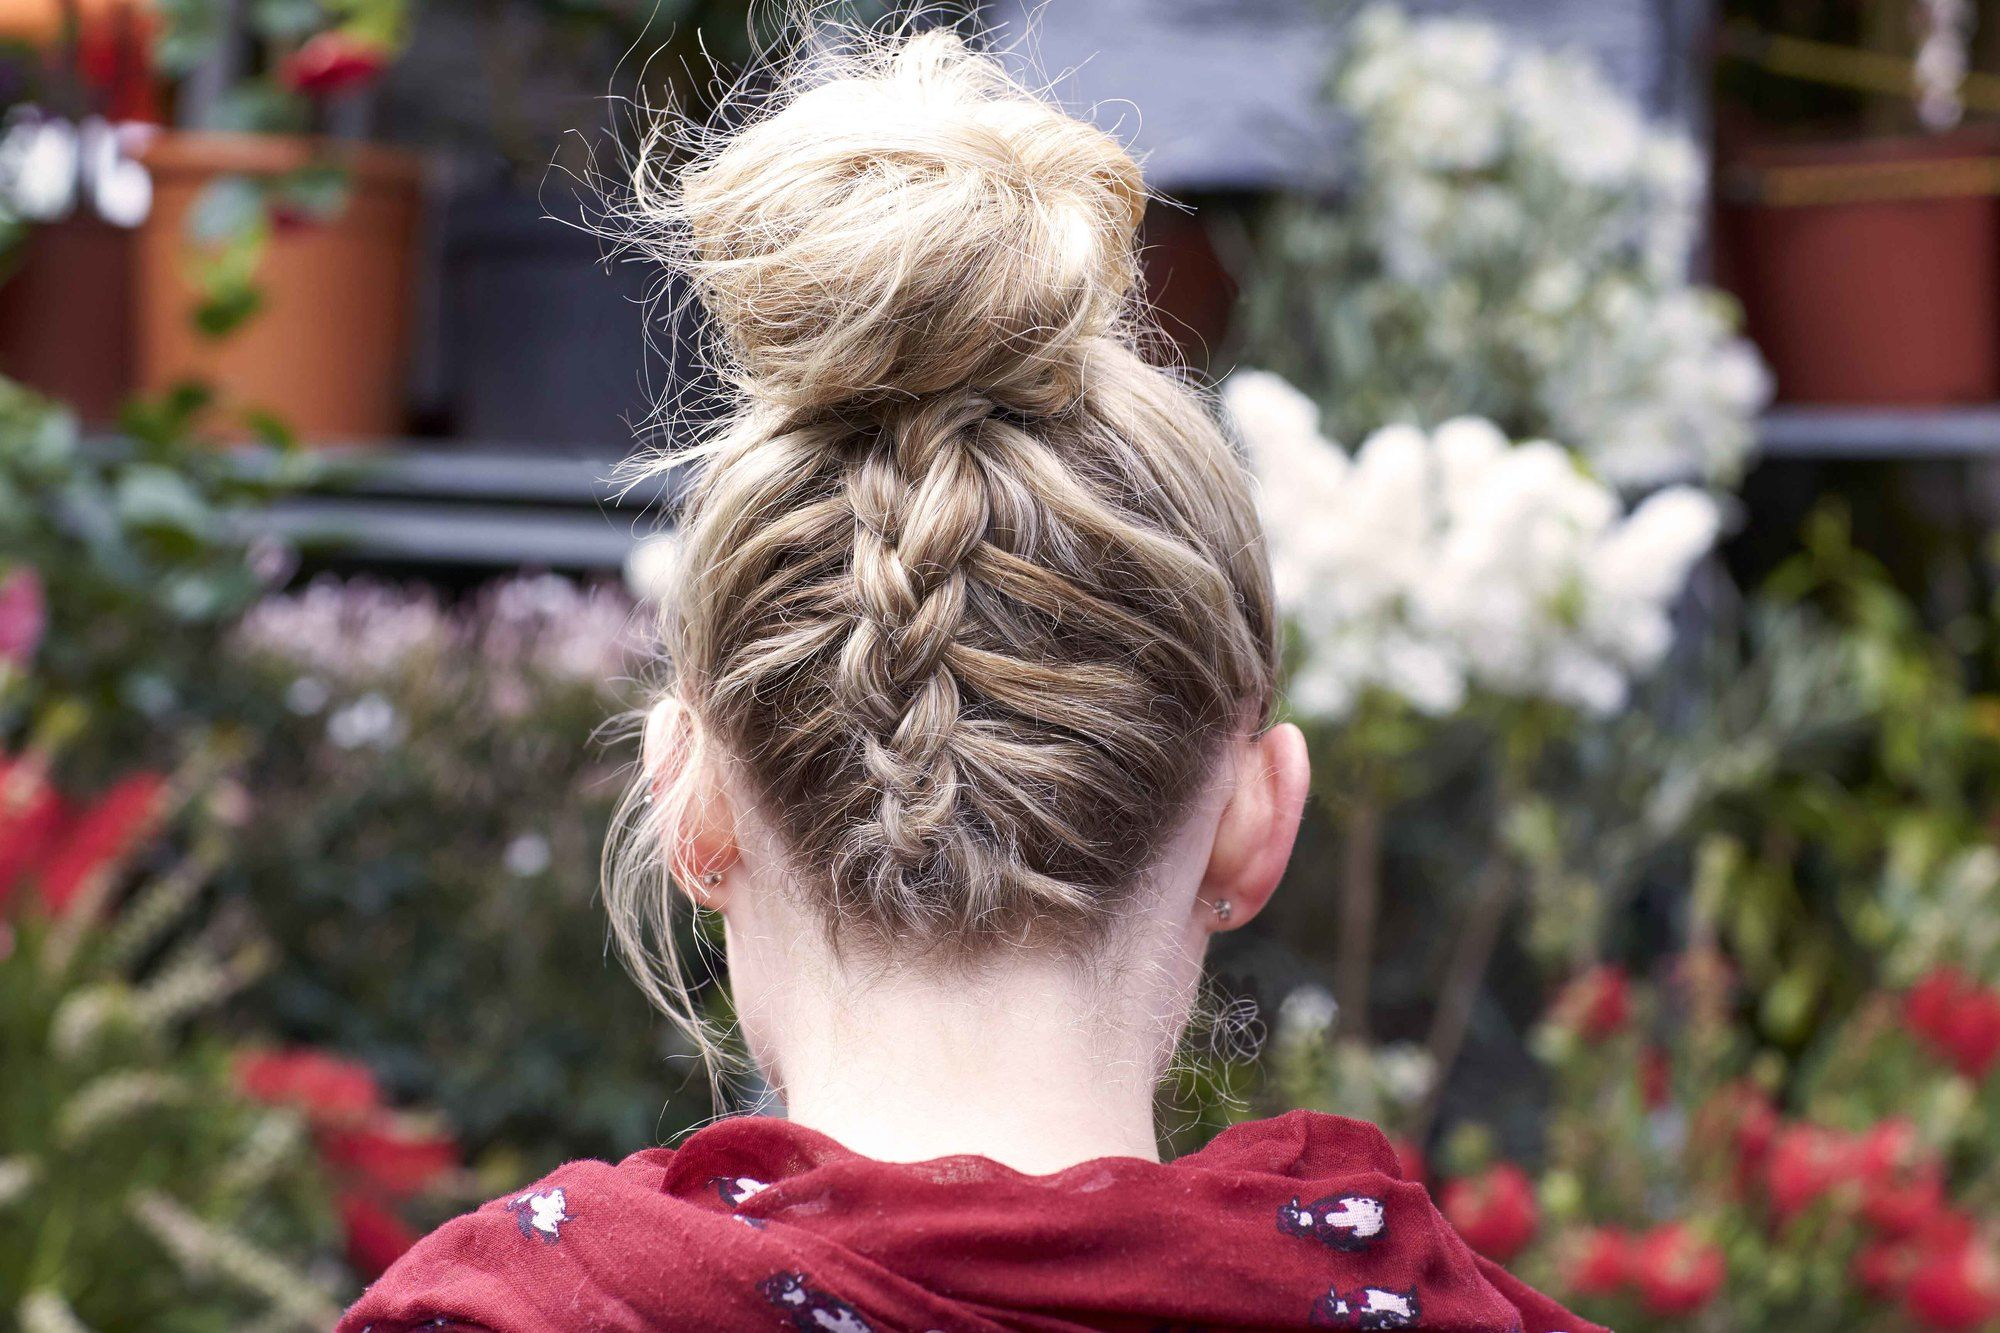 Updos with braids: Back shot of woman with dirty blonde hair styled into an upside down Dutch braided bun.